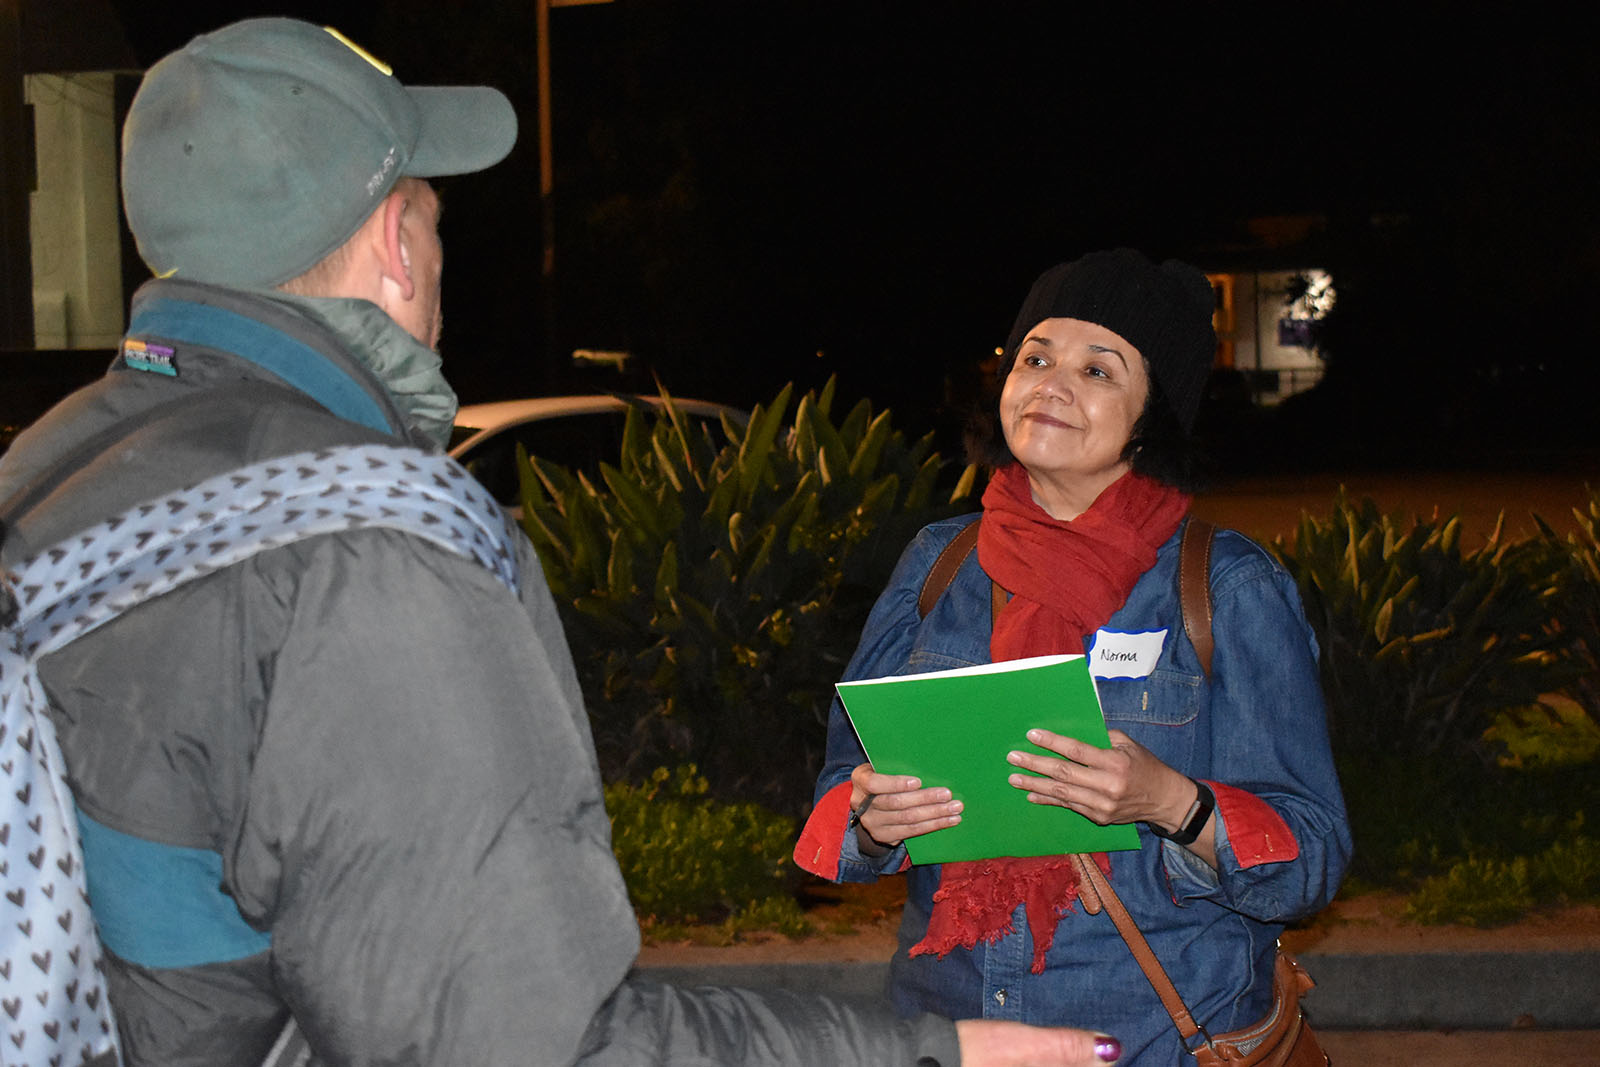 Norma Diaz, a human services specialist with the County HIV/STD Outpatient Clinic, interviews a homeless man.